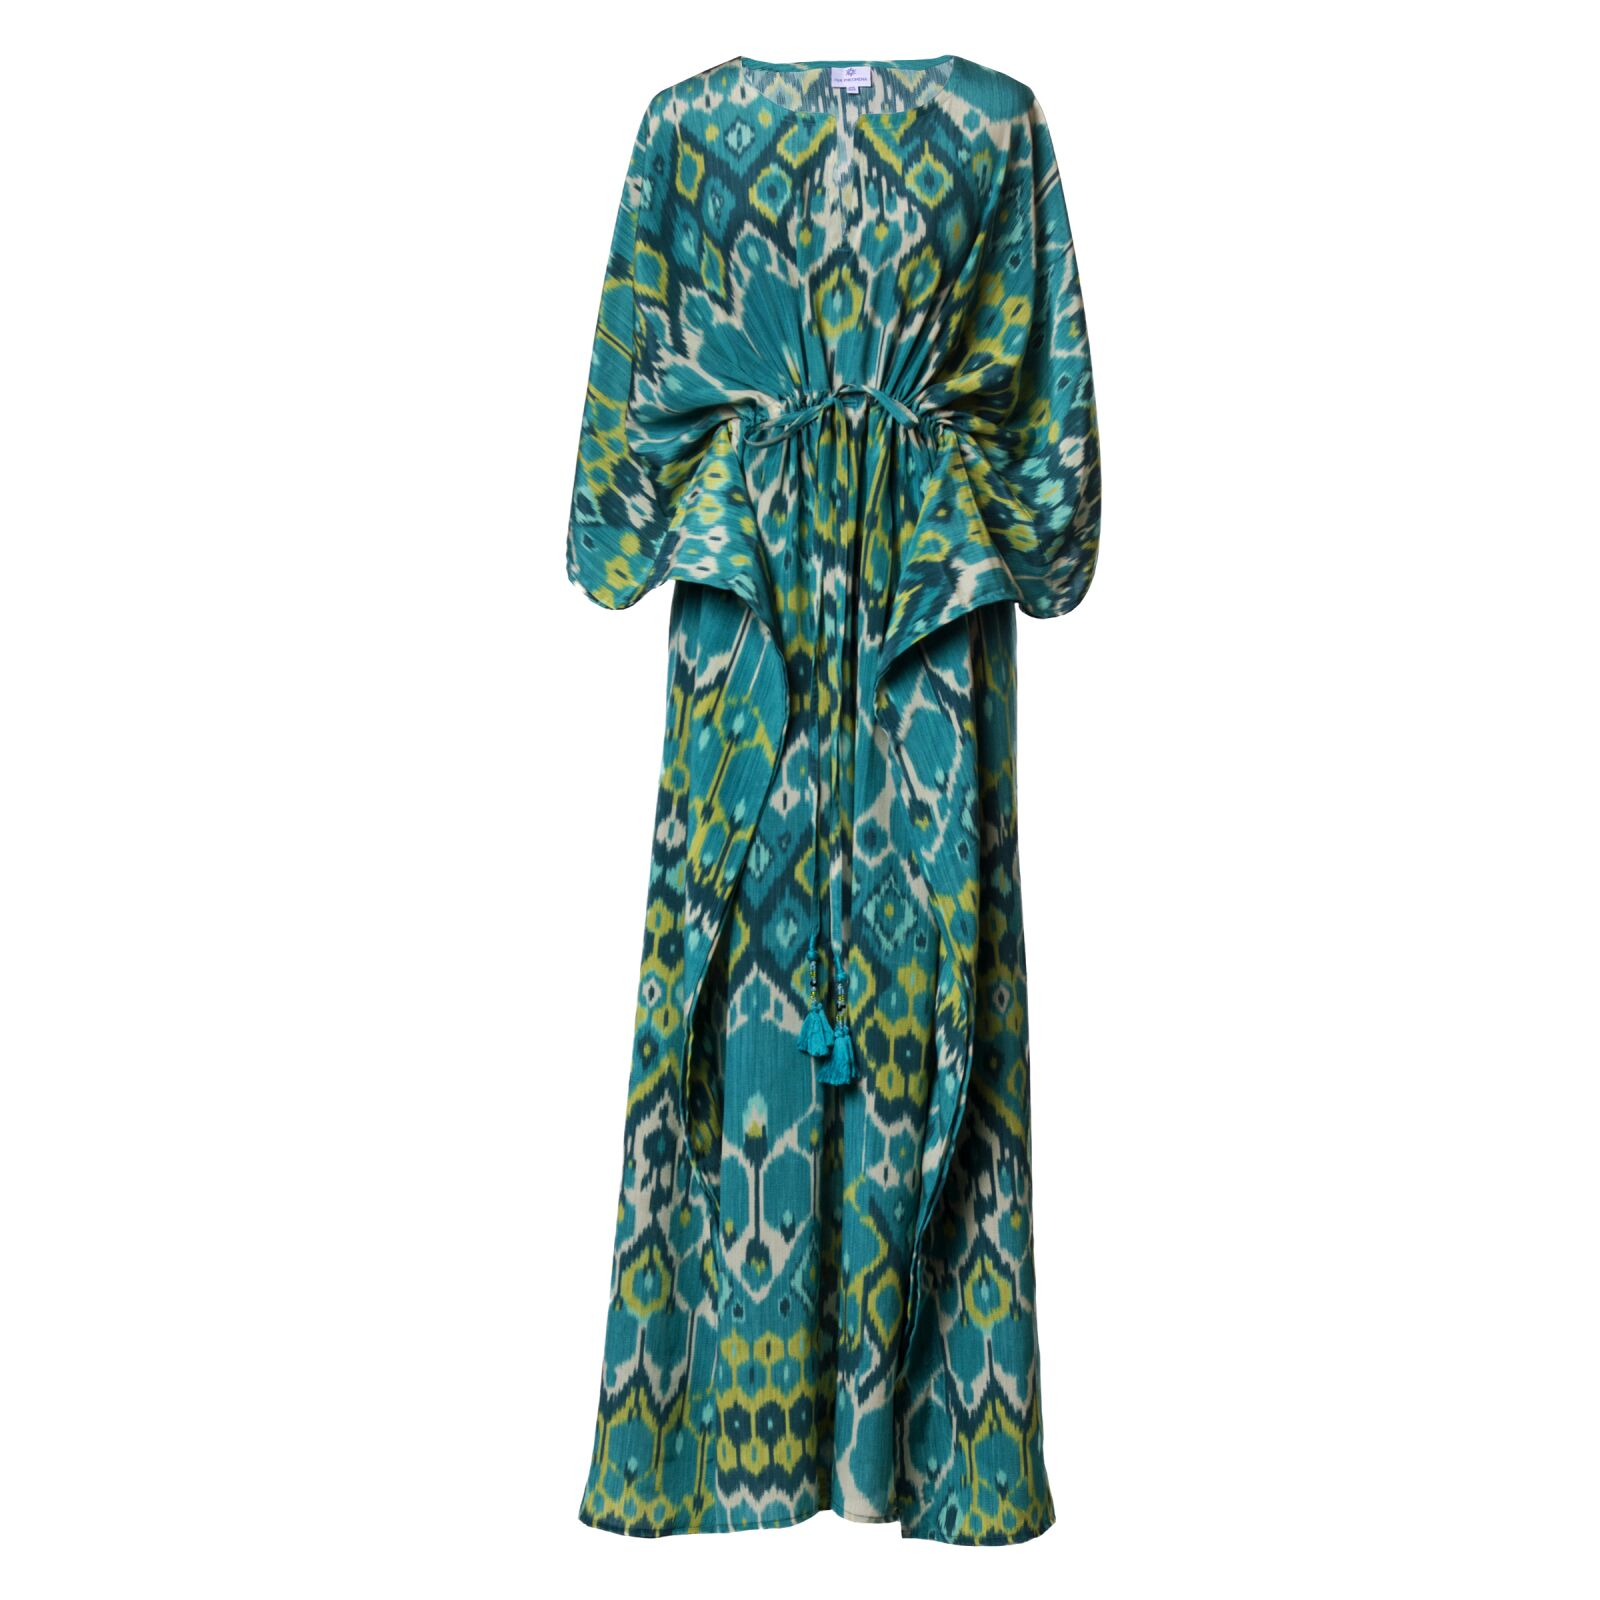 Kaftans might just be the perfect fashion piece for 2020